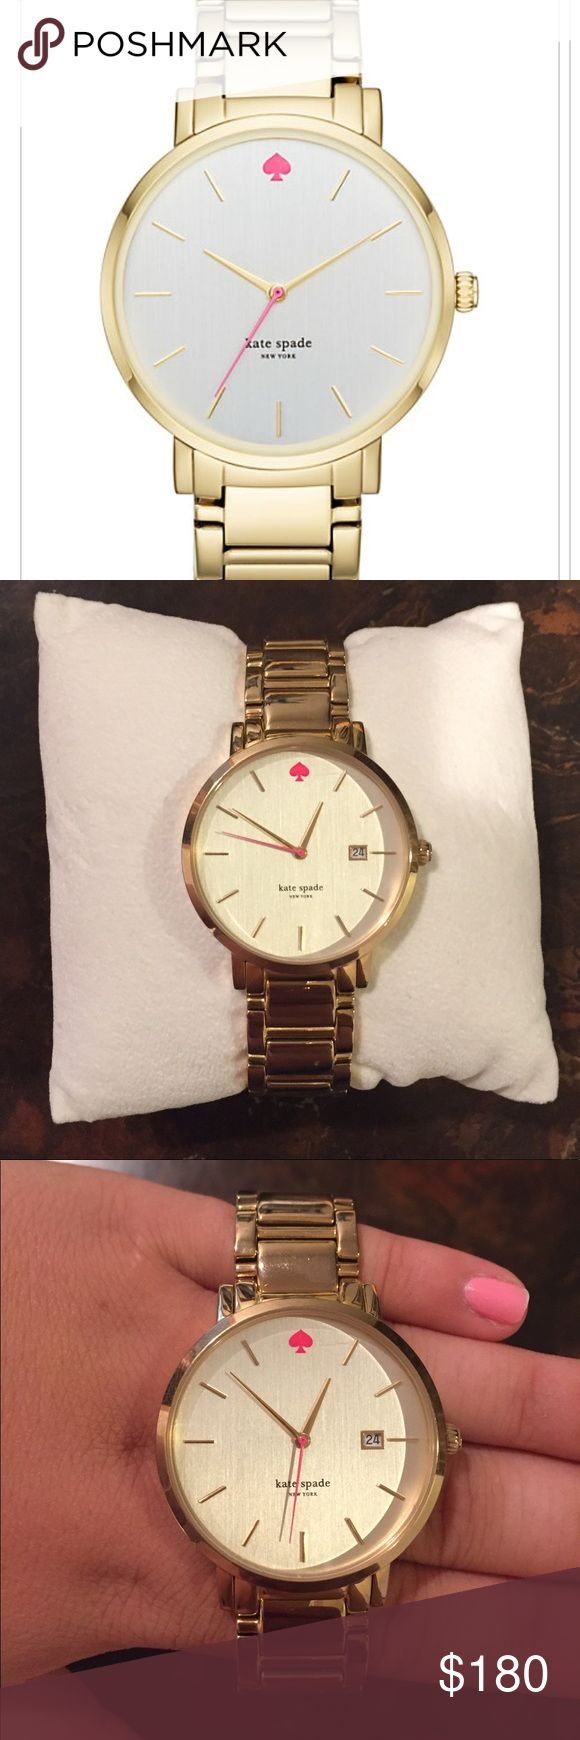 KATE SPADE GOLD GRAMERCY WATCH Lightly used Kate Spade Gold Gramercy Watch- Only worn a few times! Great condition! Looks new!  Will include box and watch instruction manual kate spade Accessories Watches